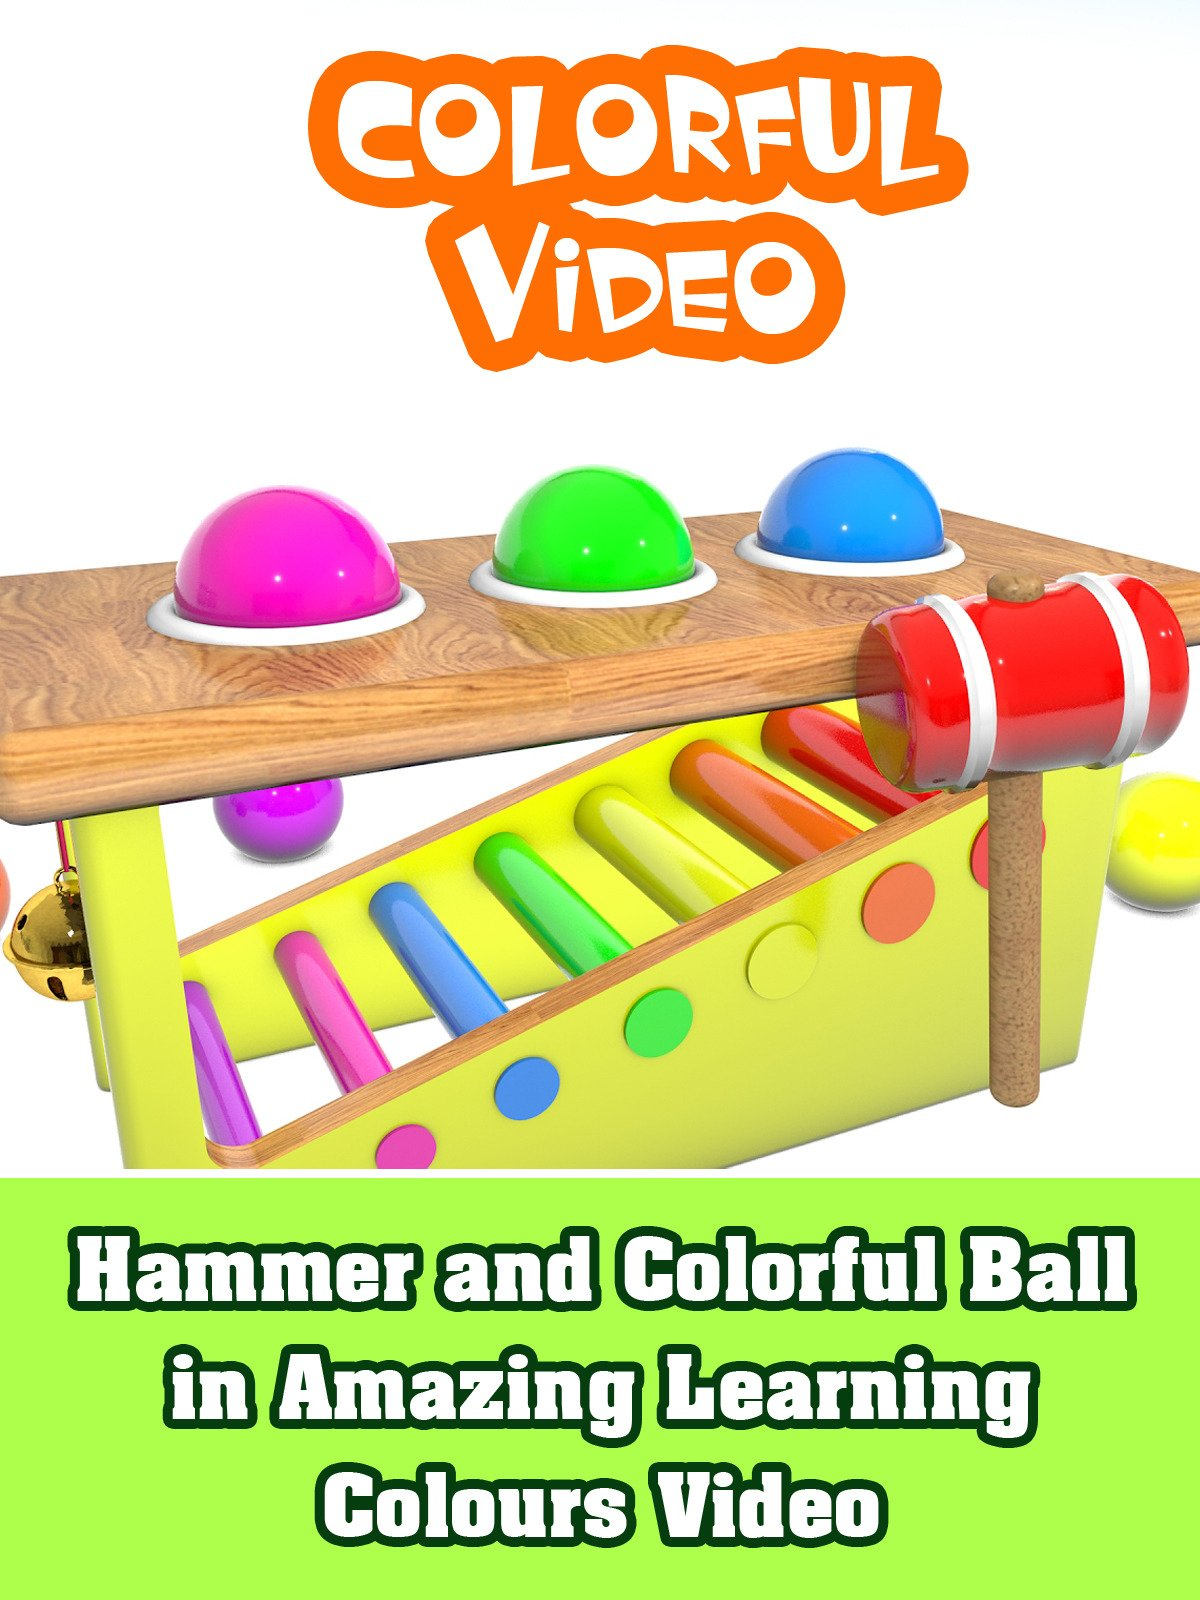 Hammer and Colorful Ball in Amazing Learning Colours Video